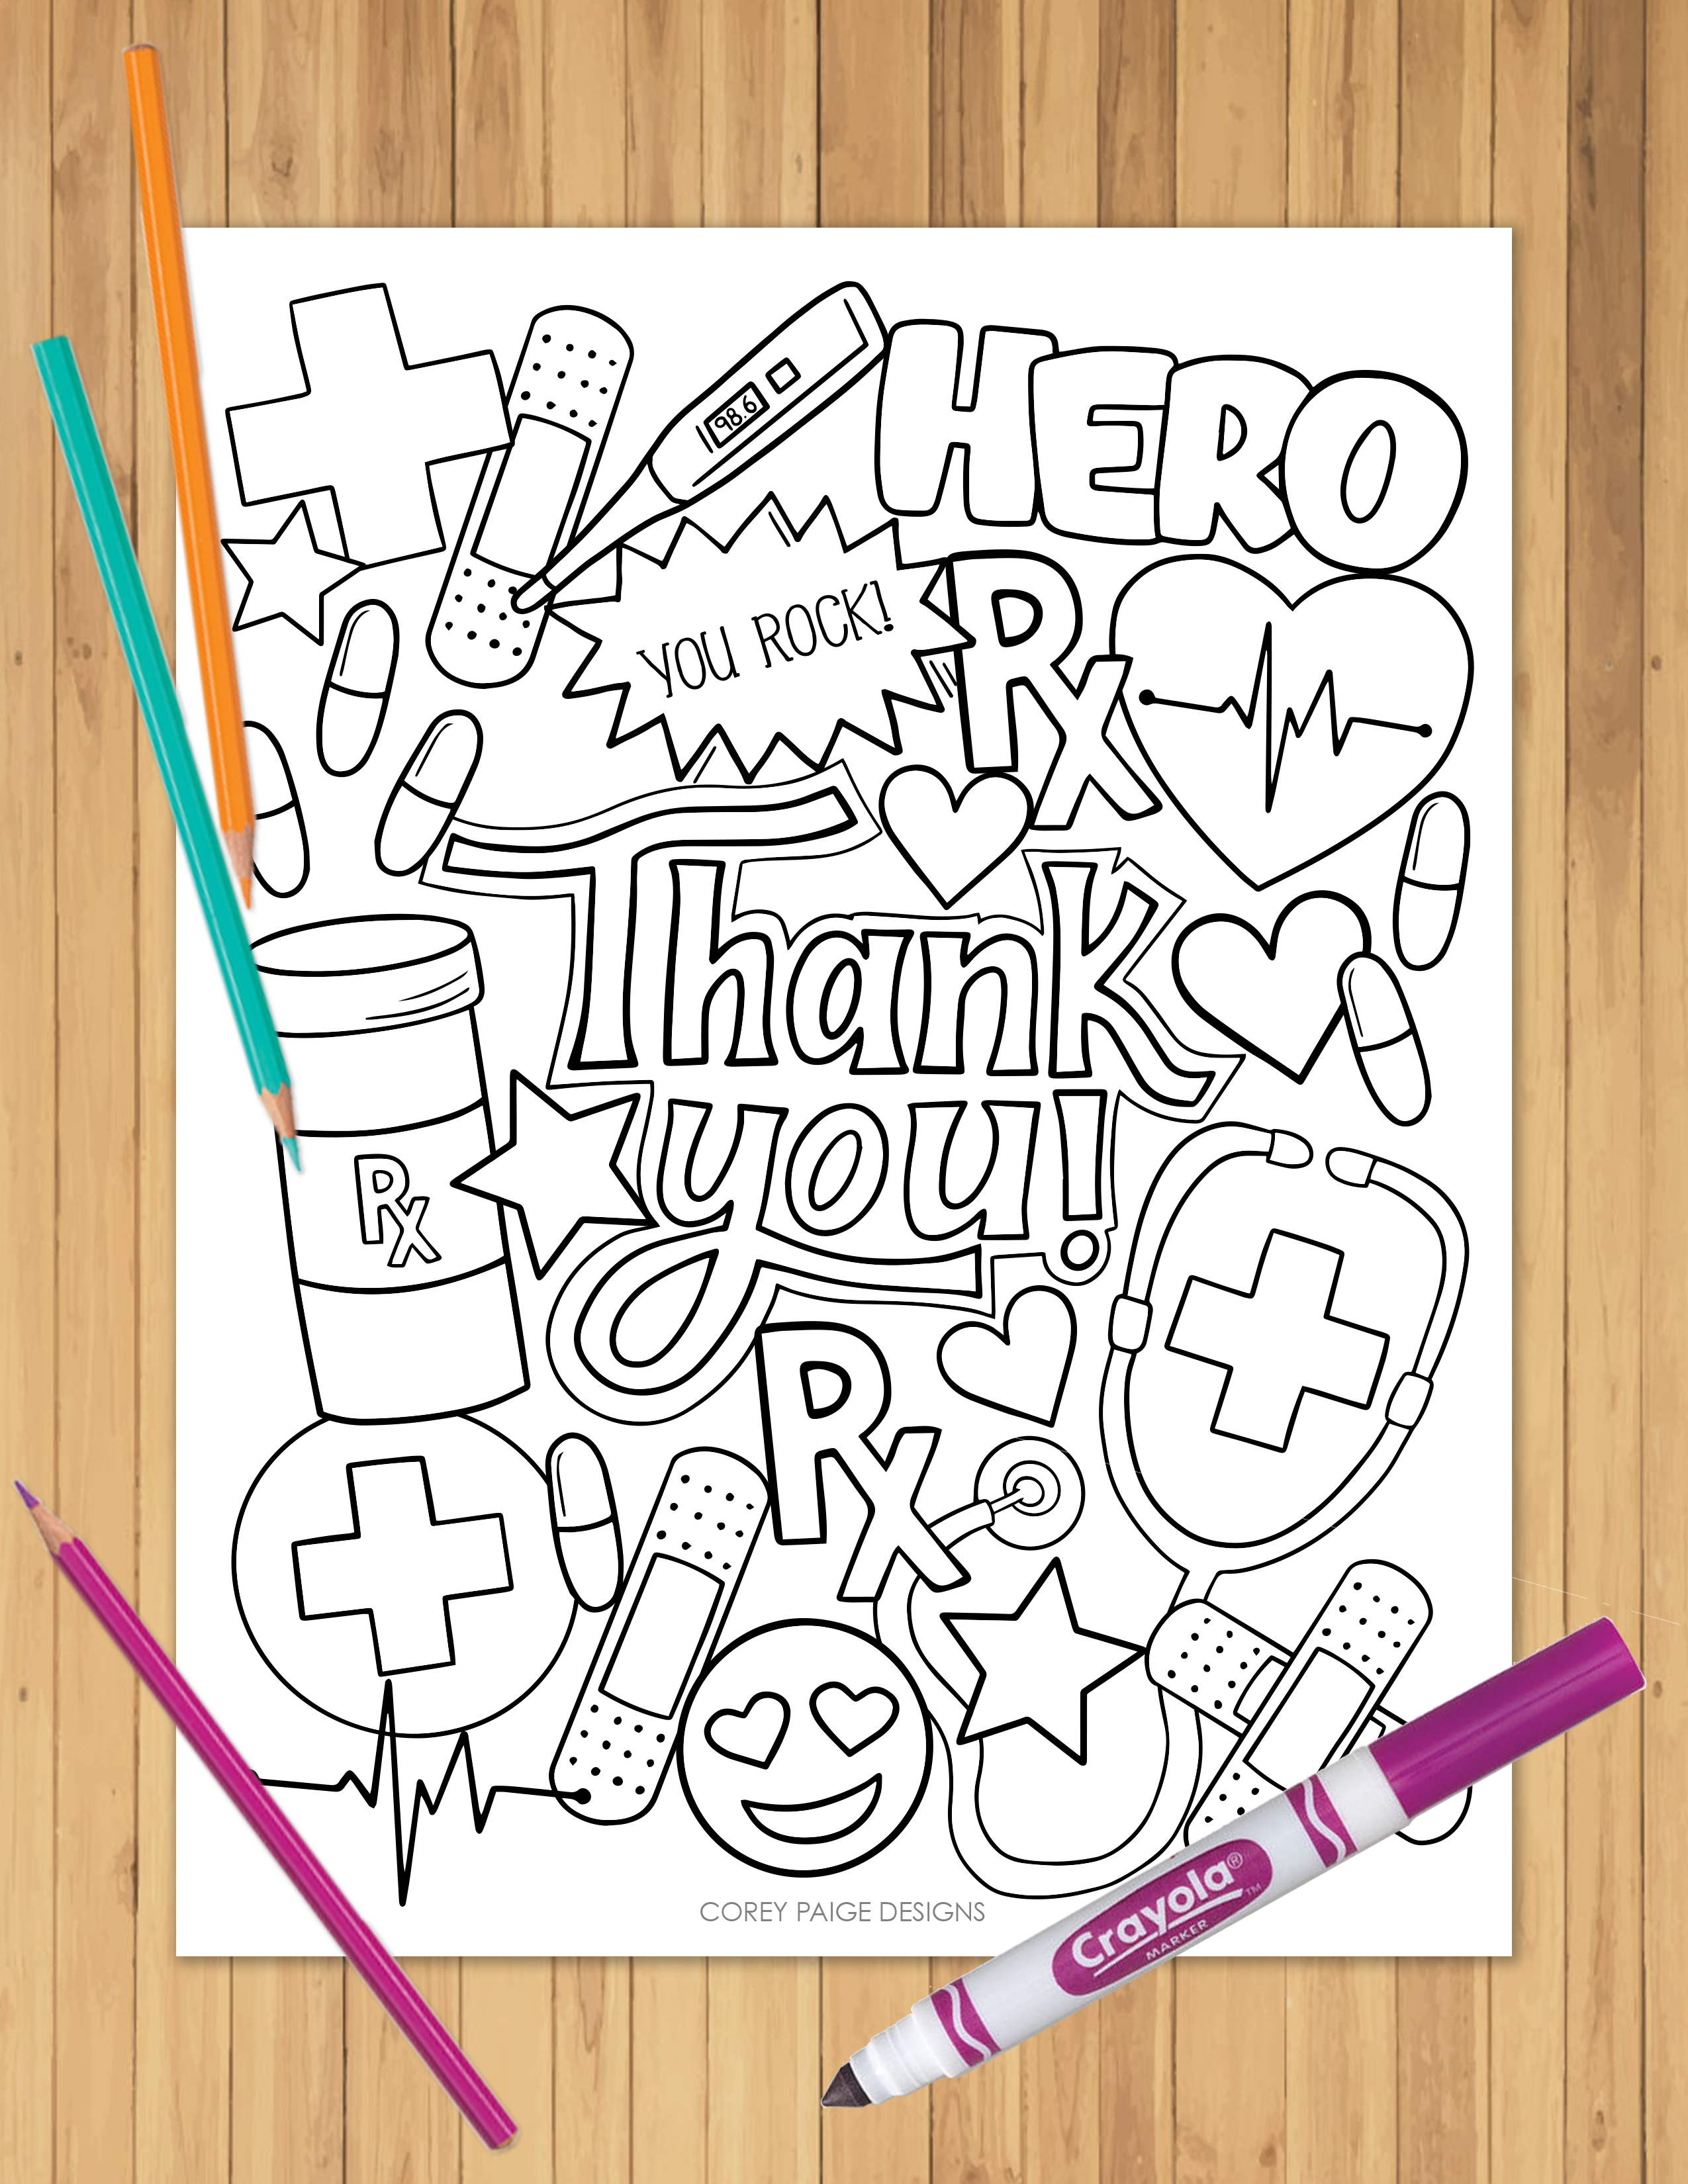 Thank You Healthcare Heroes Coloring Sheet In 2020 Fall Coloring Pages Coloring Pages For Teenagers Coloring Pages For Kids